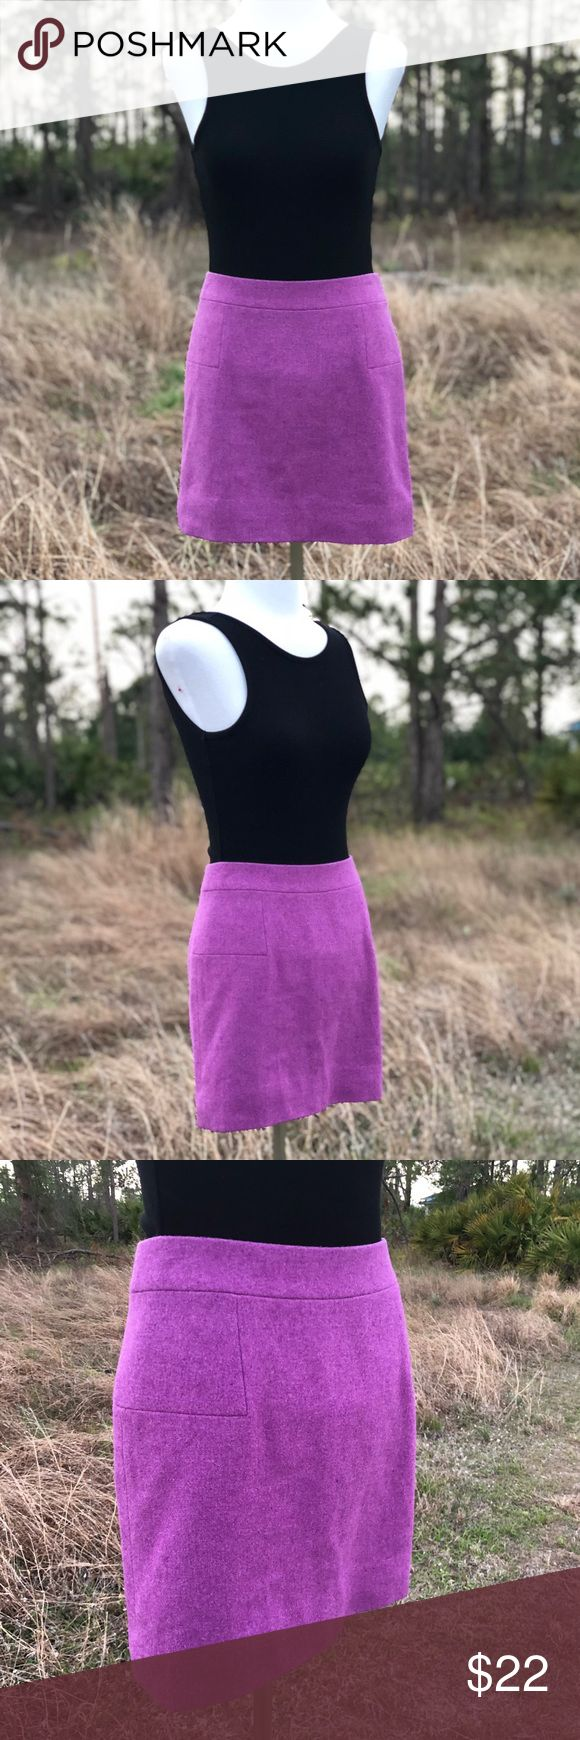 "J. Crew Mini Skirt J. Crew lavender wool mini skirt. Fully lined. Like new. Very on trend, this skirt is 100% ""Clueless"" vibes. Channel your inner Cher Horowitz or Dionne Davenport in this fun fitted mini. J. Crew Skirts Mini"